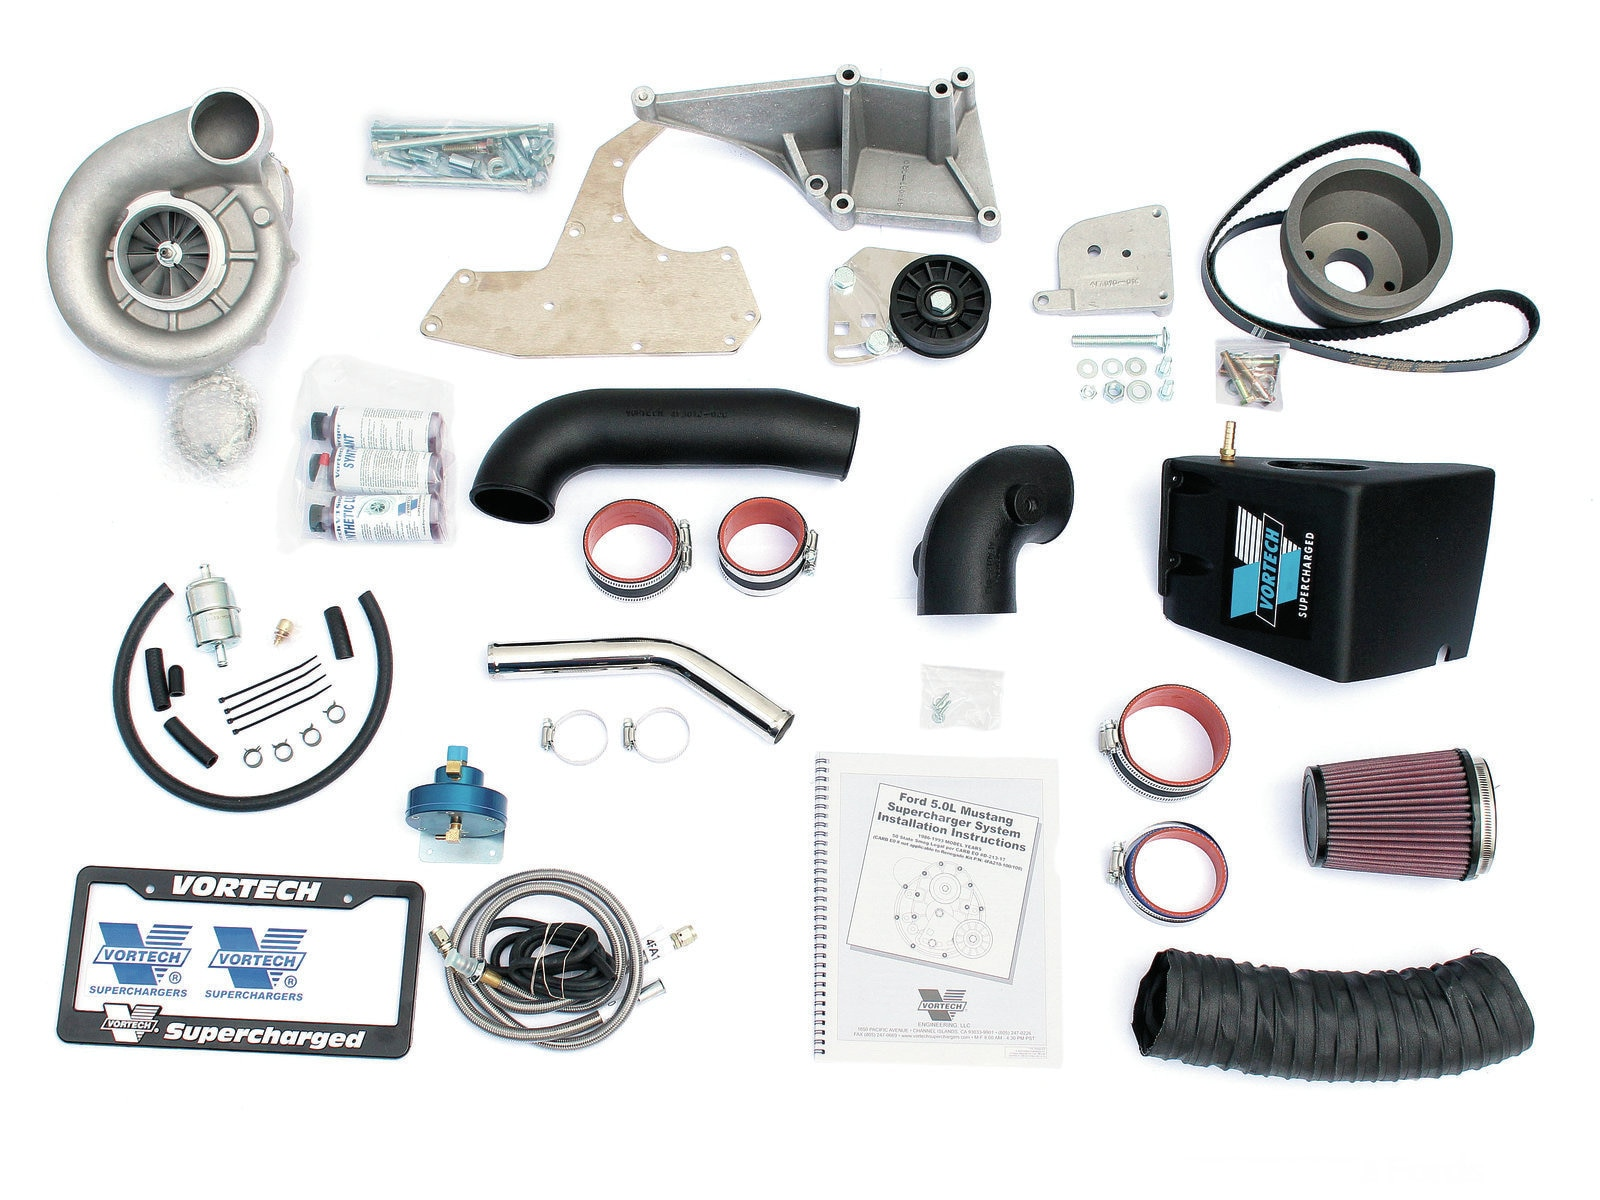 Mdmp 1110 Mmf Tech Supercharger Systems And Upgrades Pressurized Power 011